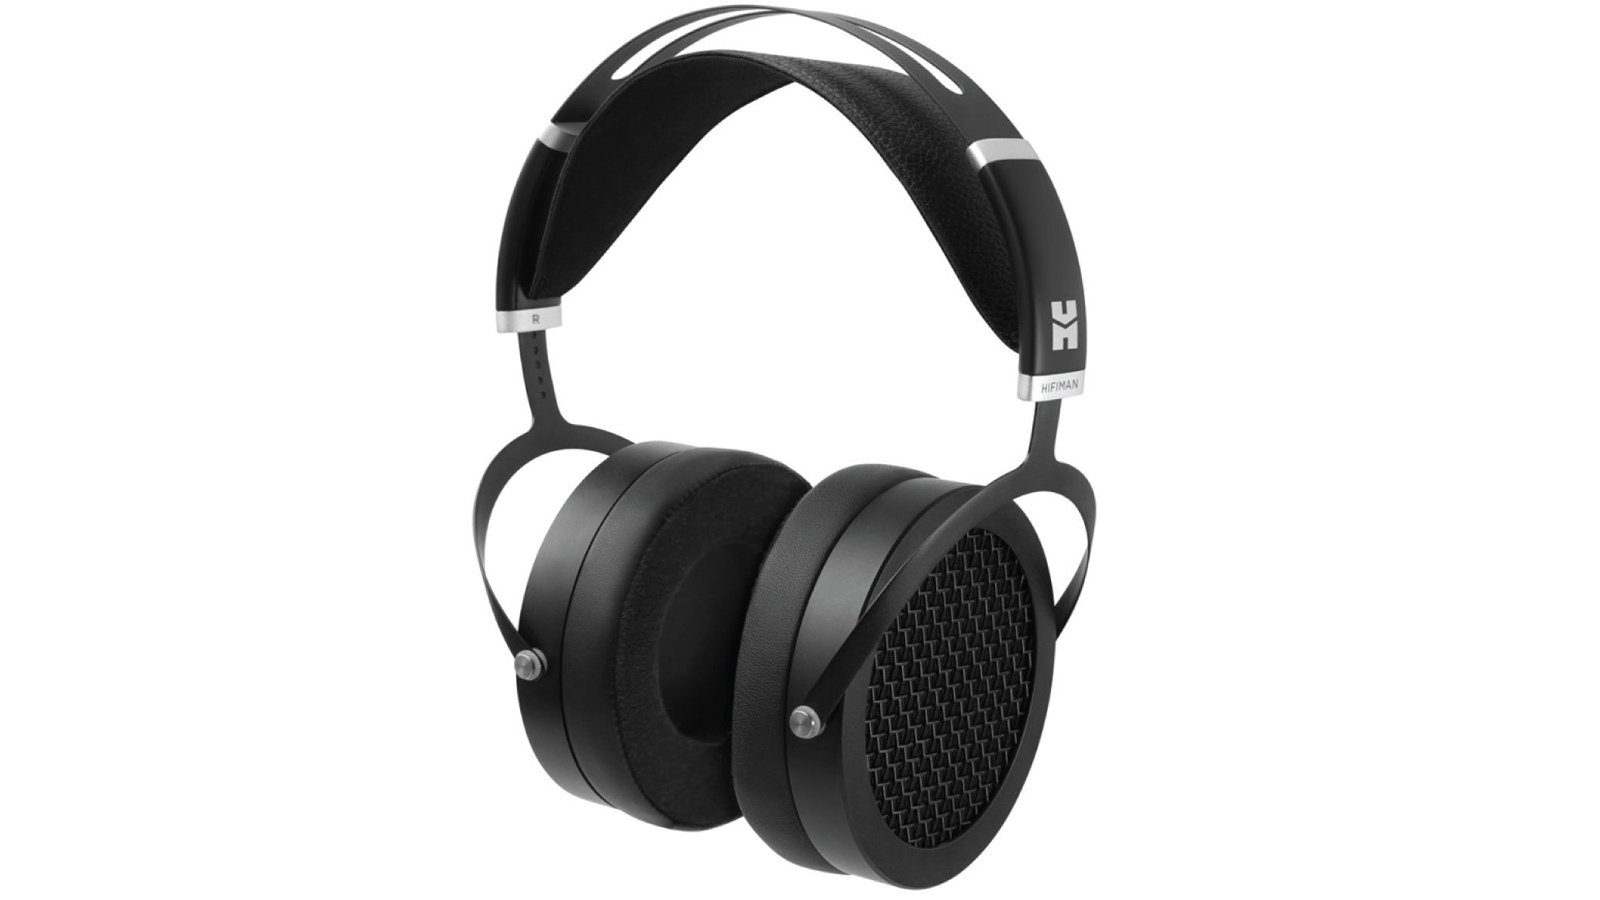 d2b26ea46c3 These headphones might not have the same low-end rumble and mid-bass slam  as the LCD-2C but are otherwise ...